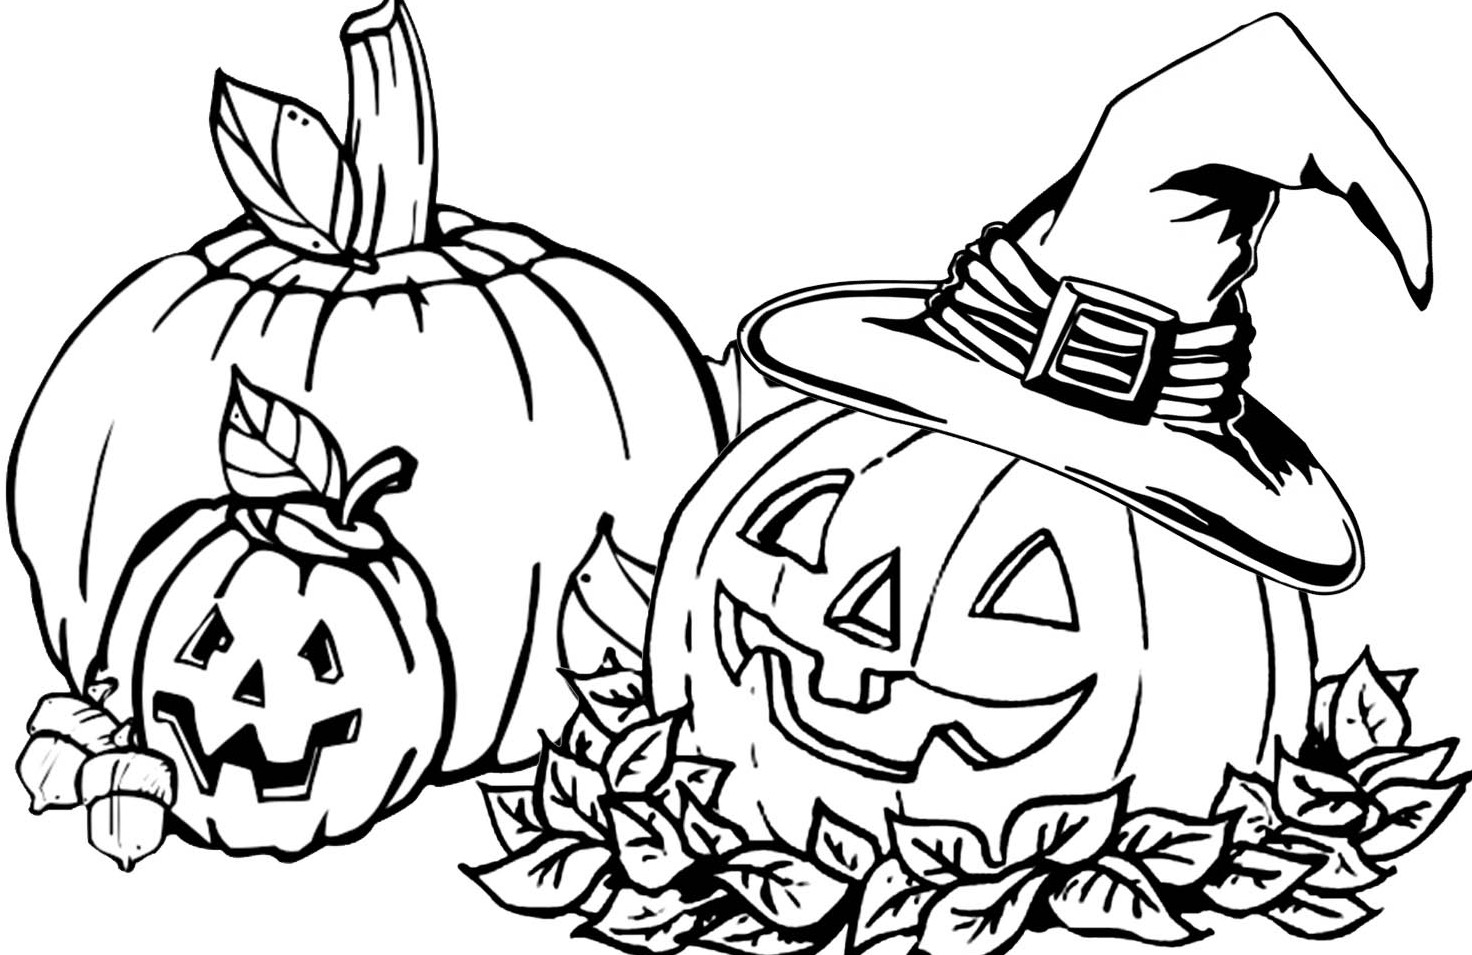 pumpkin coloring pages free printable pumpkin patch coloring page free download on clipartmag printable pumpkin free coloring pages